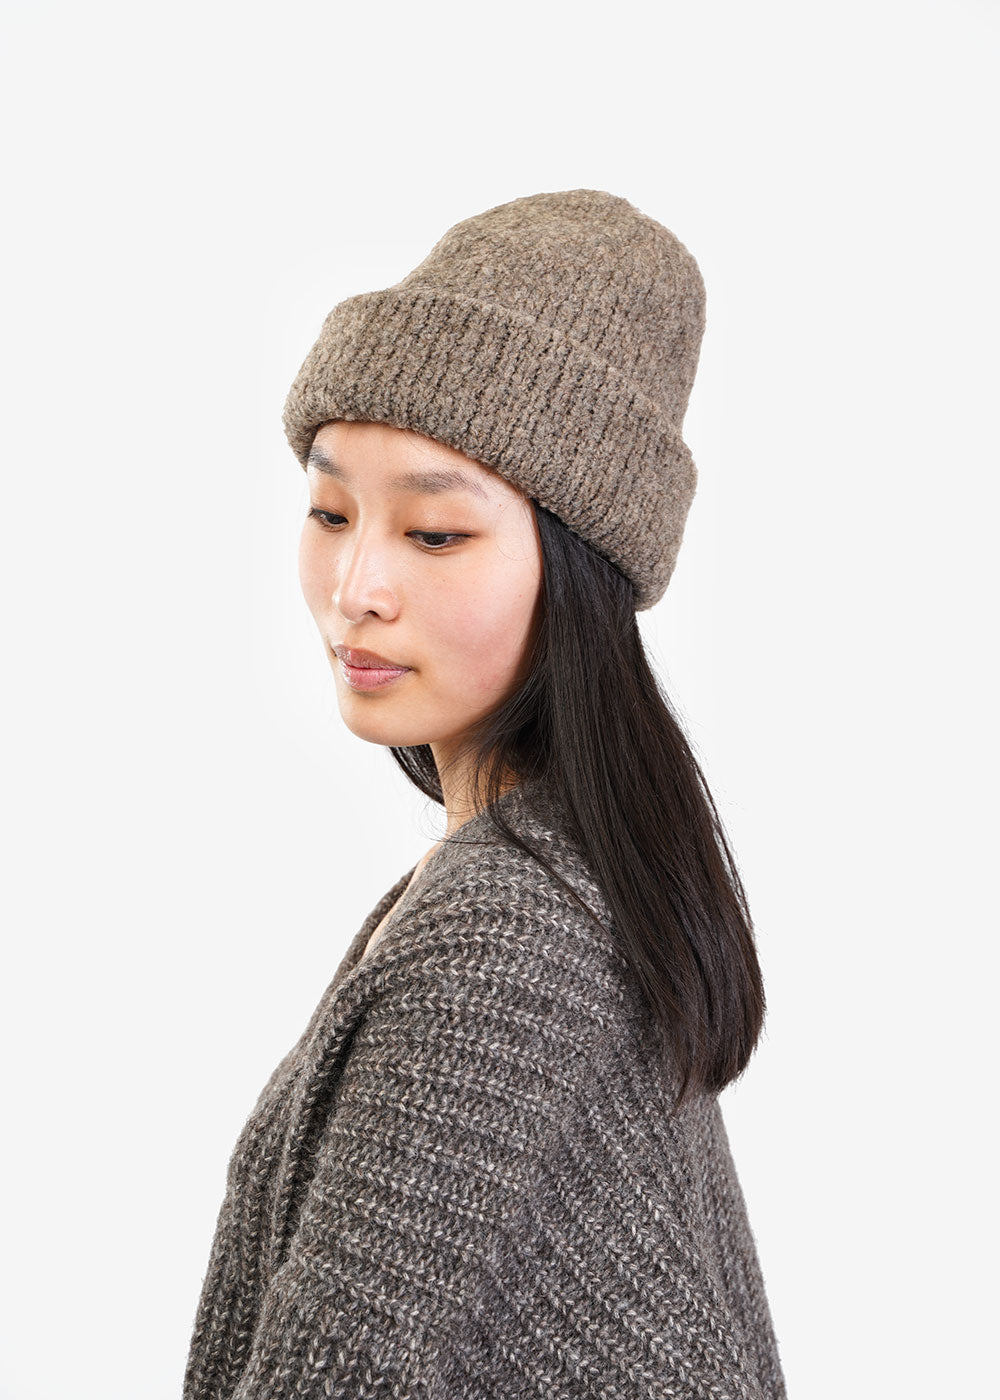 kordal handknit beanie sustainable ethical fashion new classics studios canada